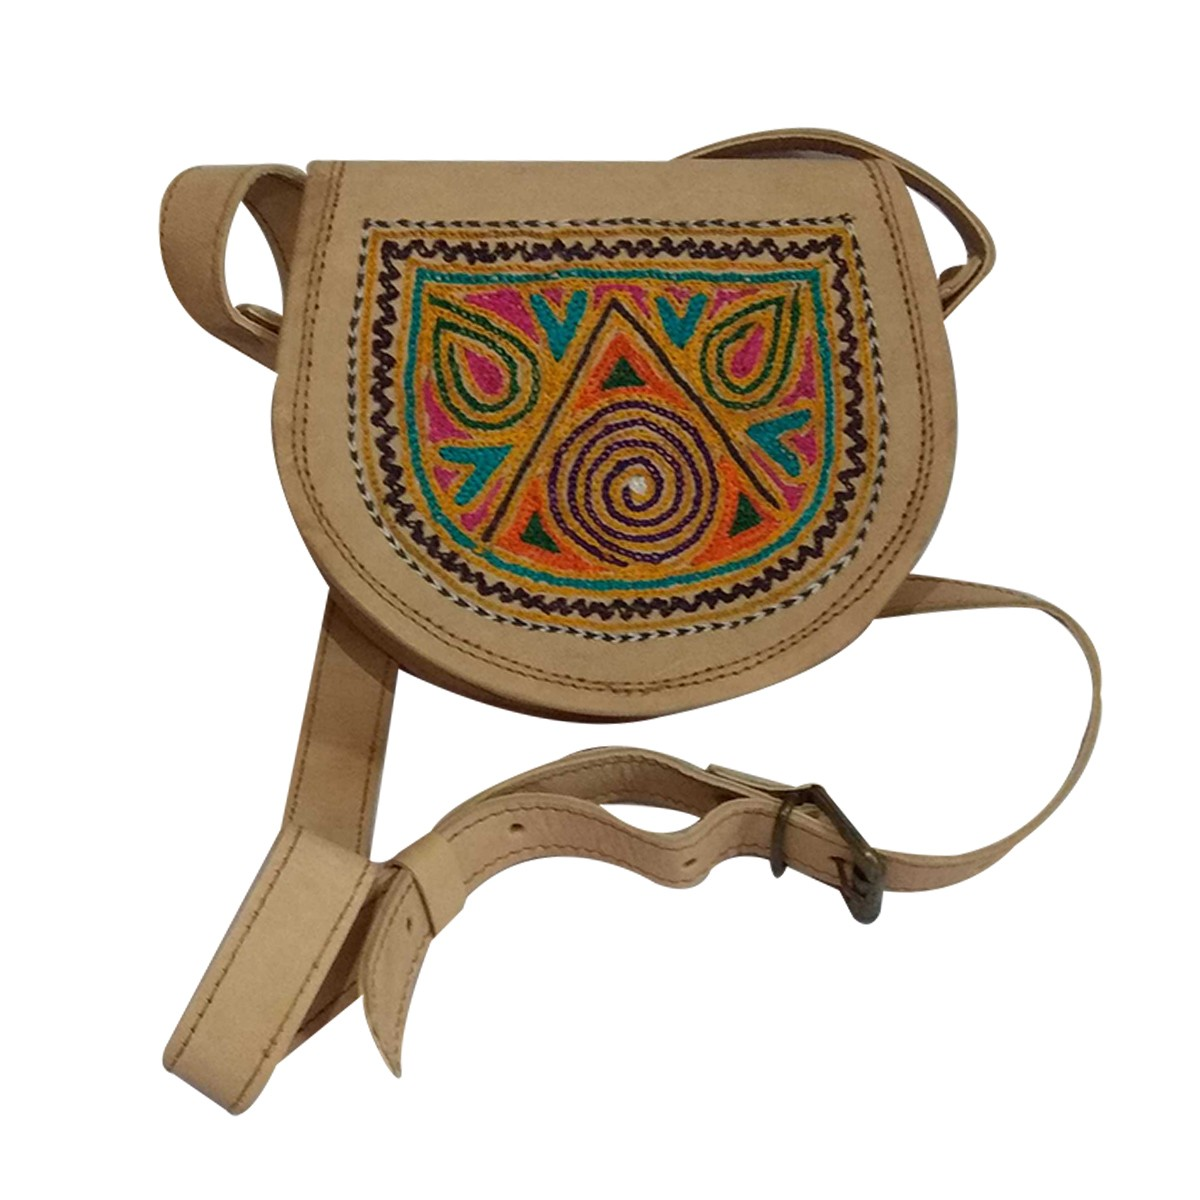 Handmade Brown Genuine Leather Vintage Sling Bag by Rural Artisans